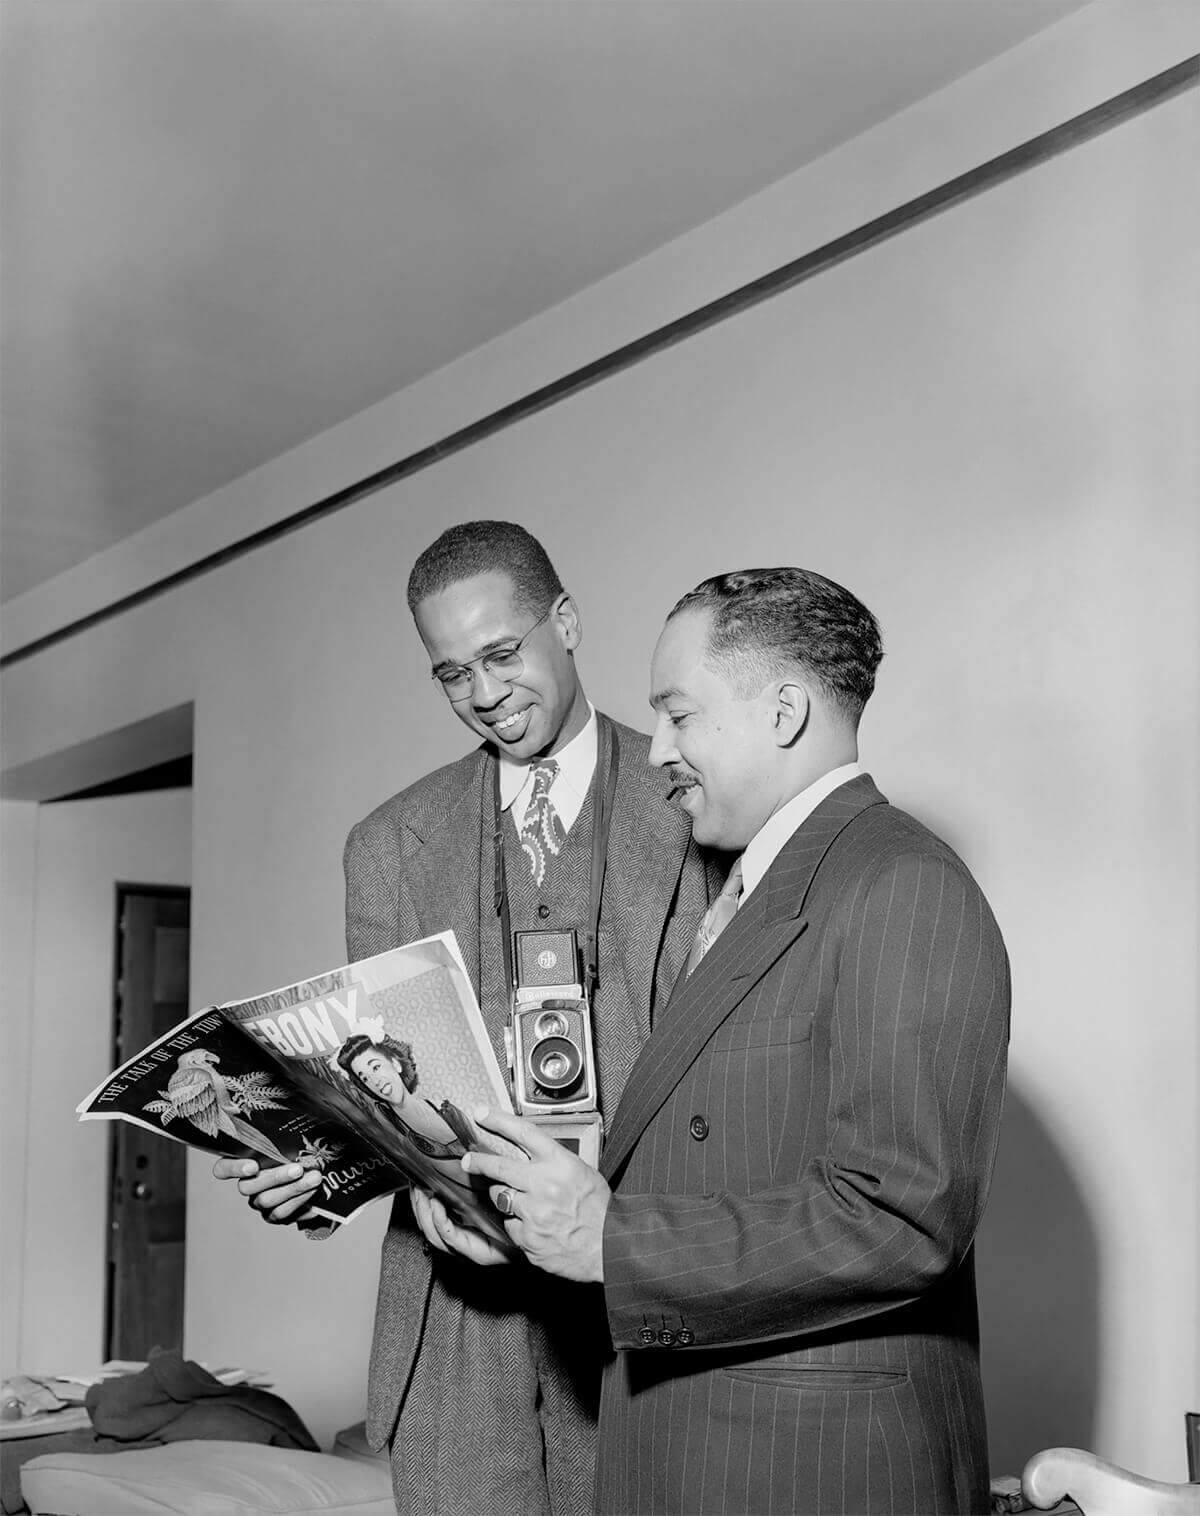 Griff Davis and Langston Hughes, Letters and Photographs 1947-1967: A Global Friendship